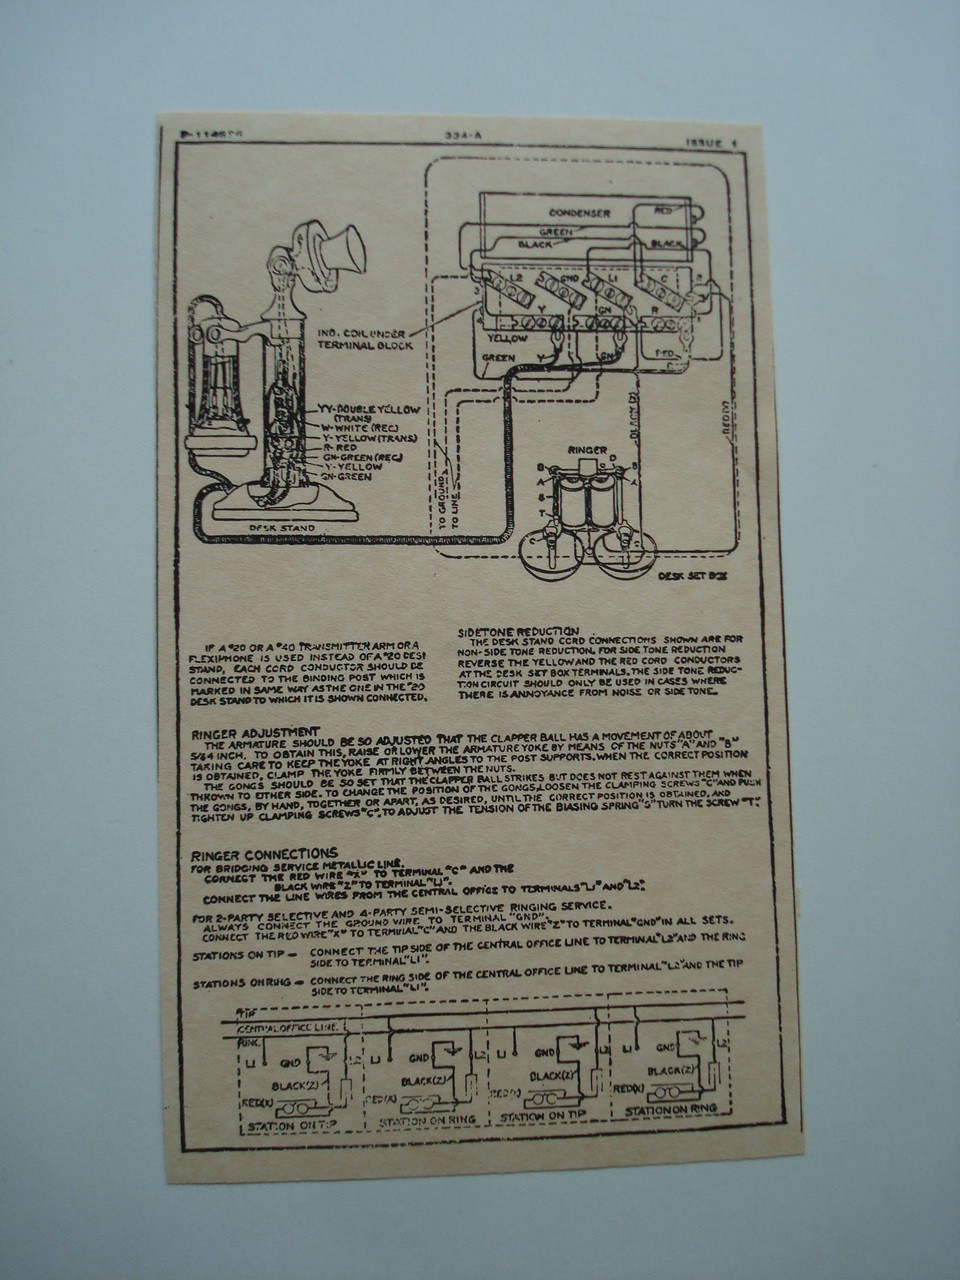 western electric 334a ringer subset box wiring diagram glue on oldwestern electric phone wiring 11 [ 960 x 1280 Pixel ]